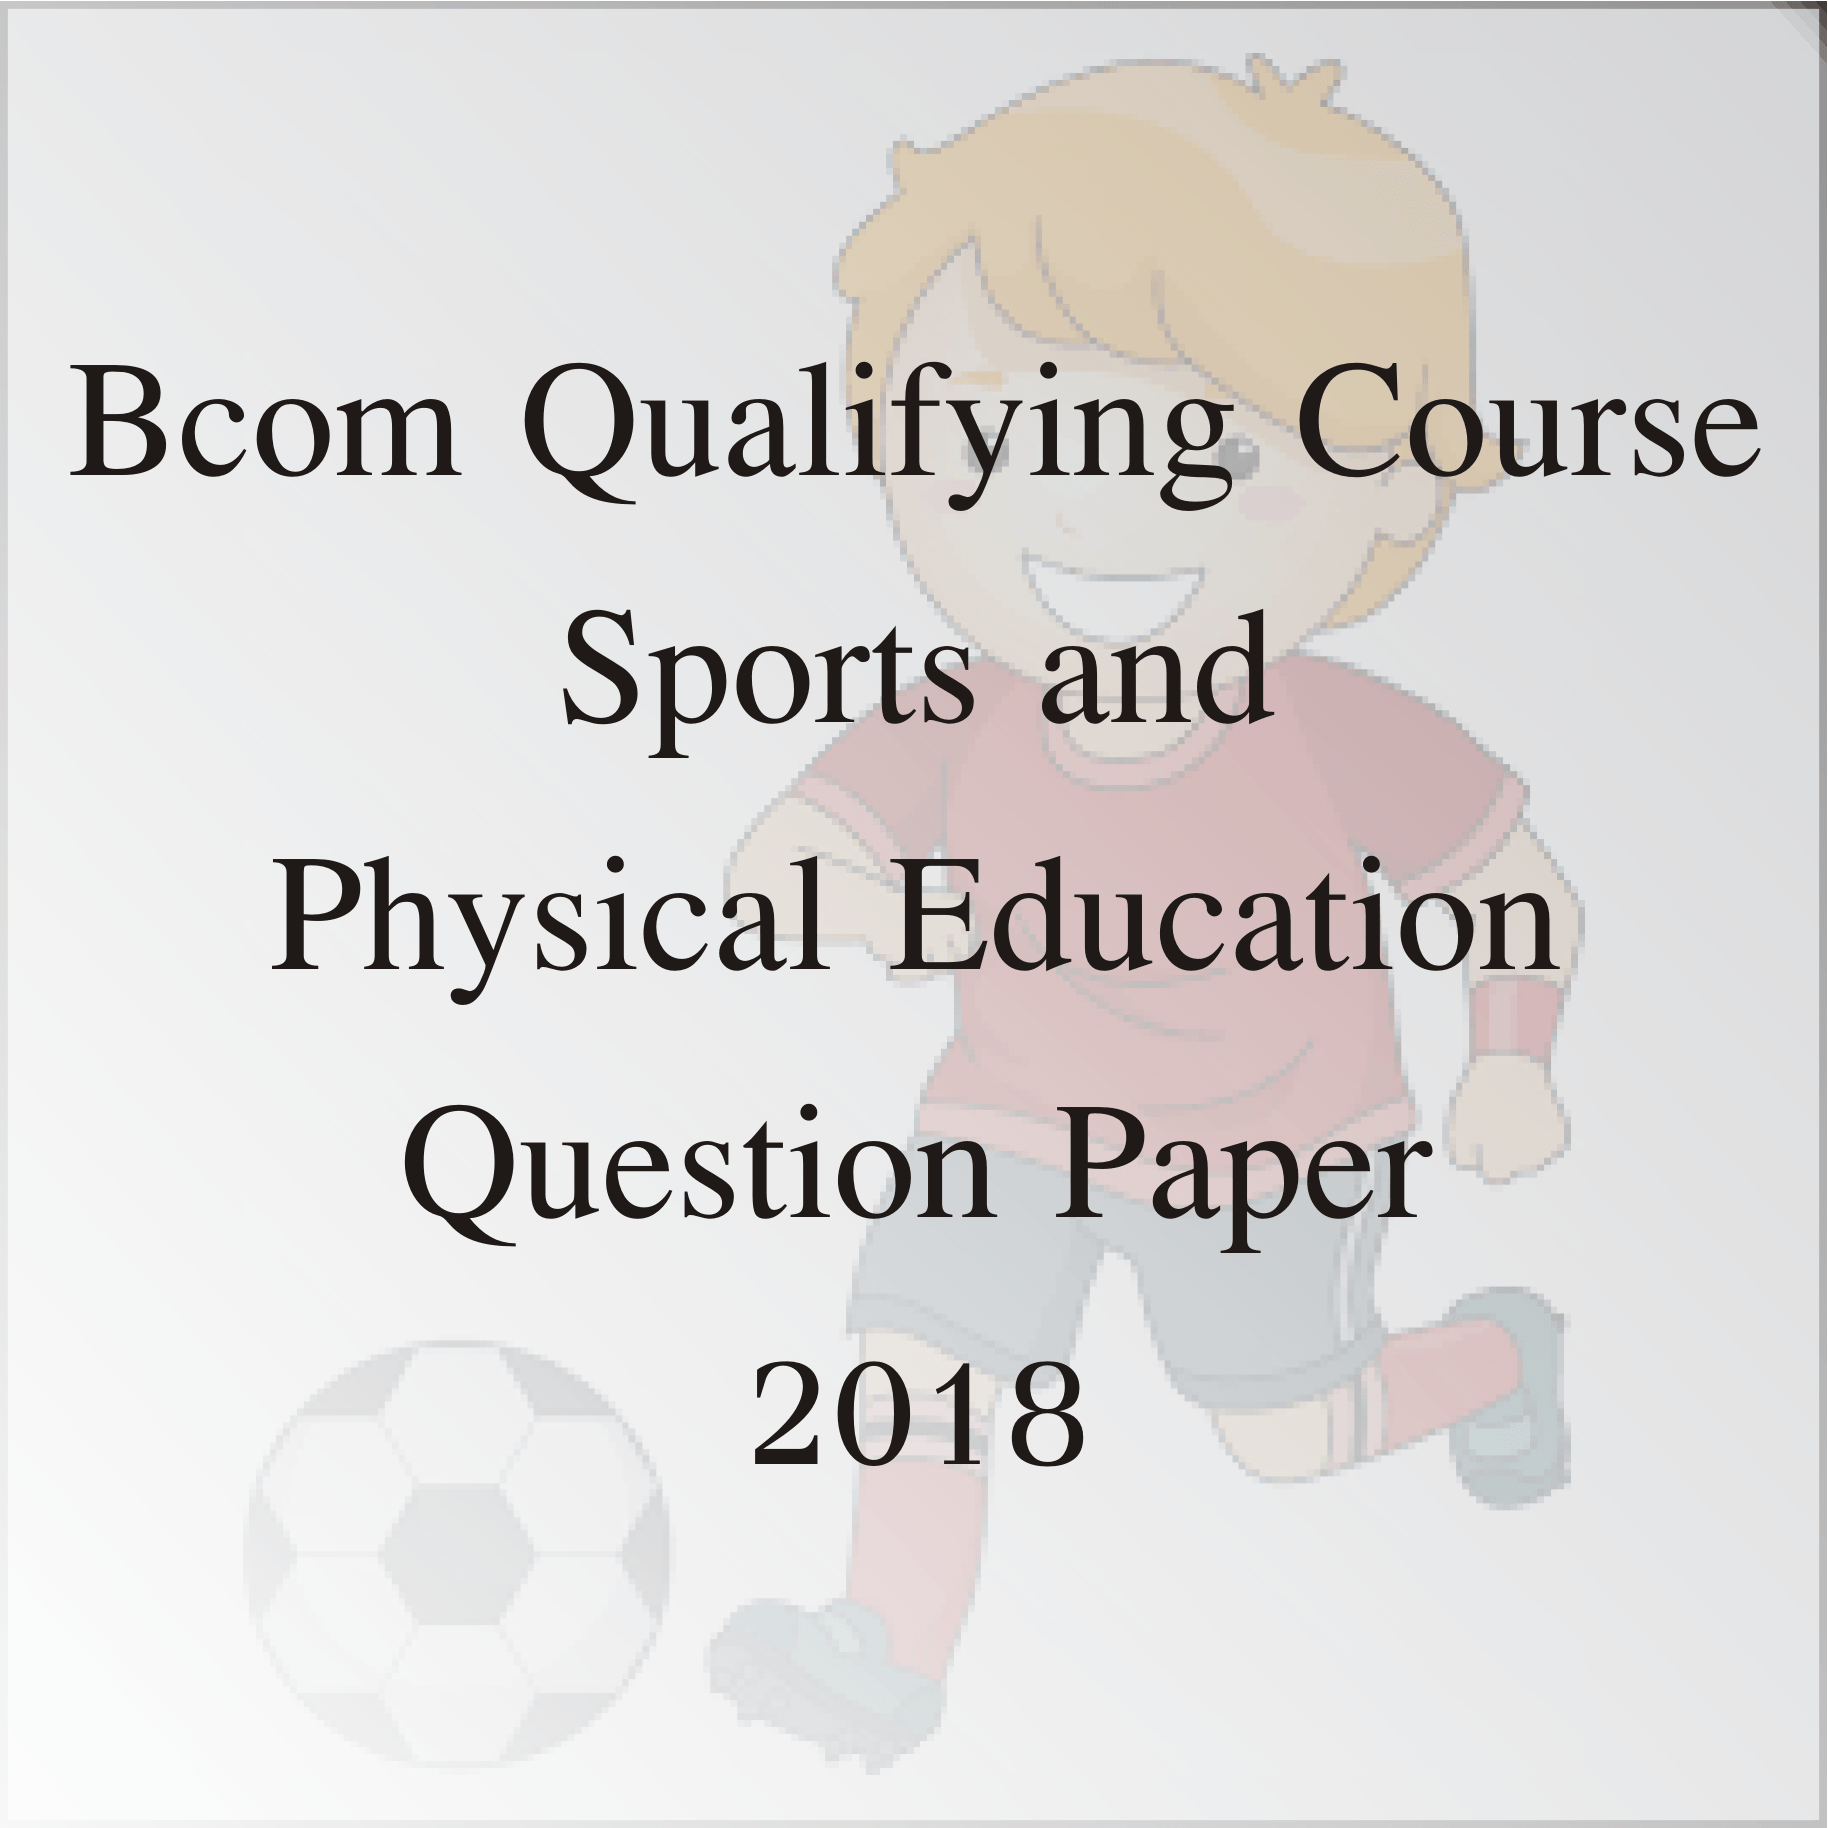 Bcom Qualifying Course Sports and Physical Education Question Paper 2018